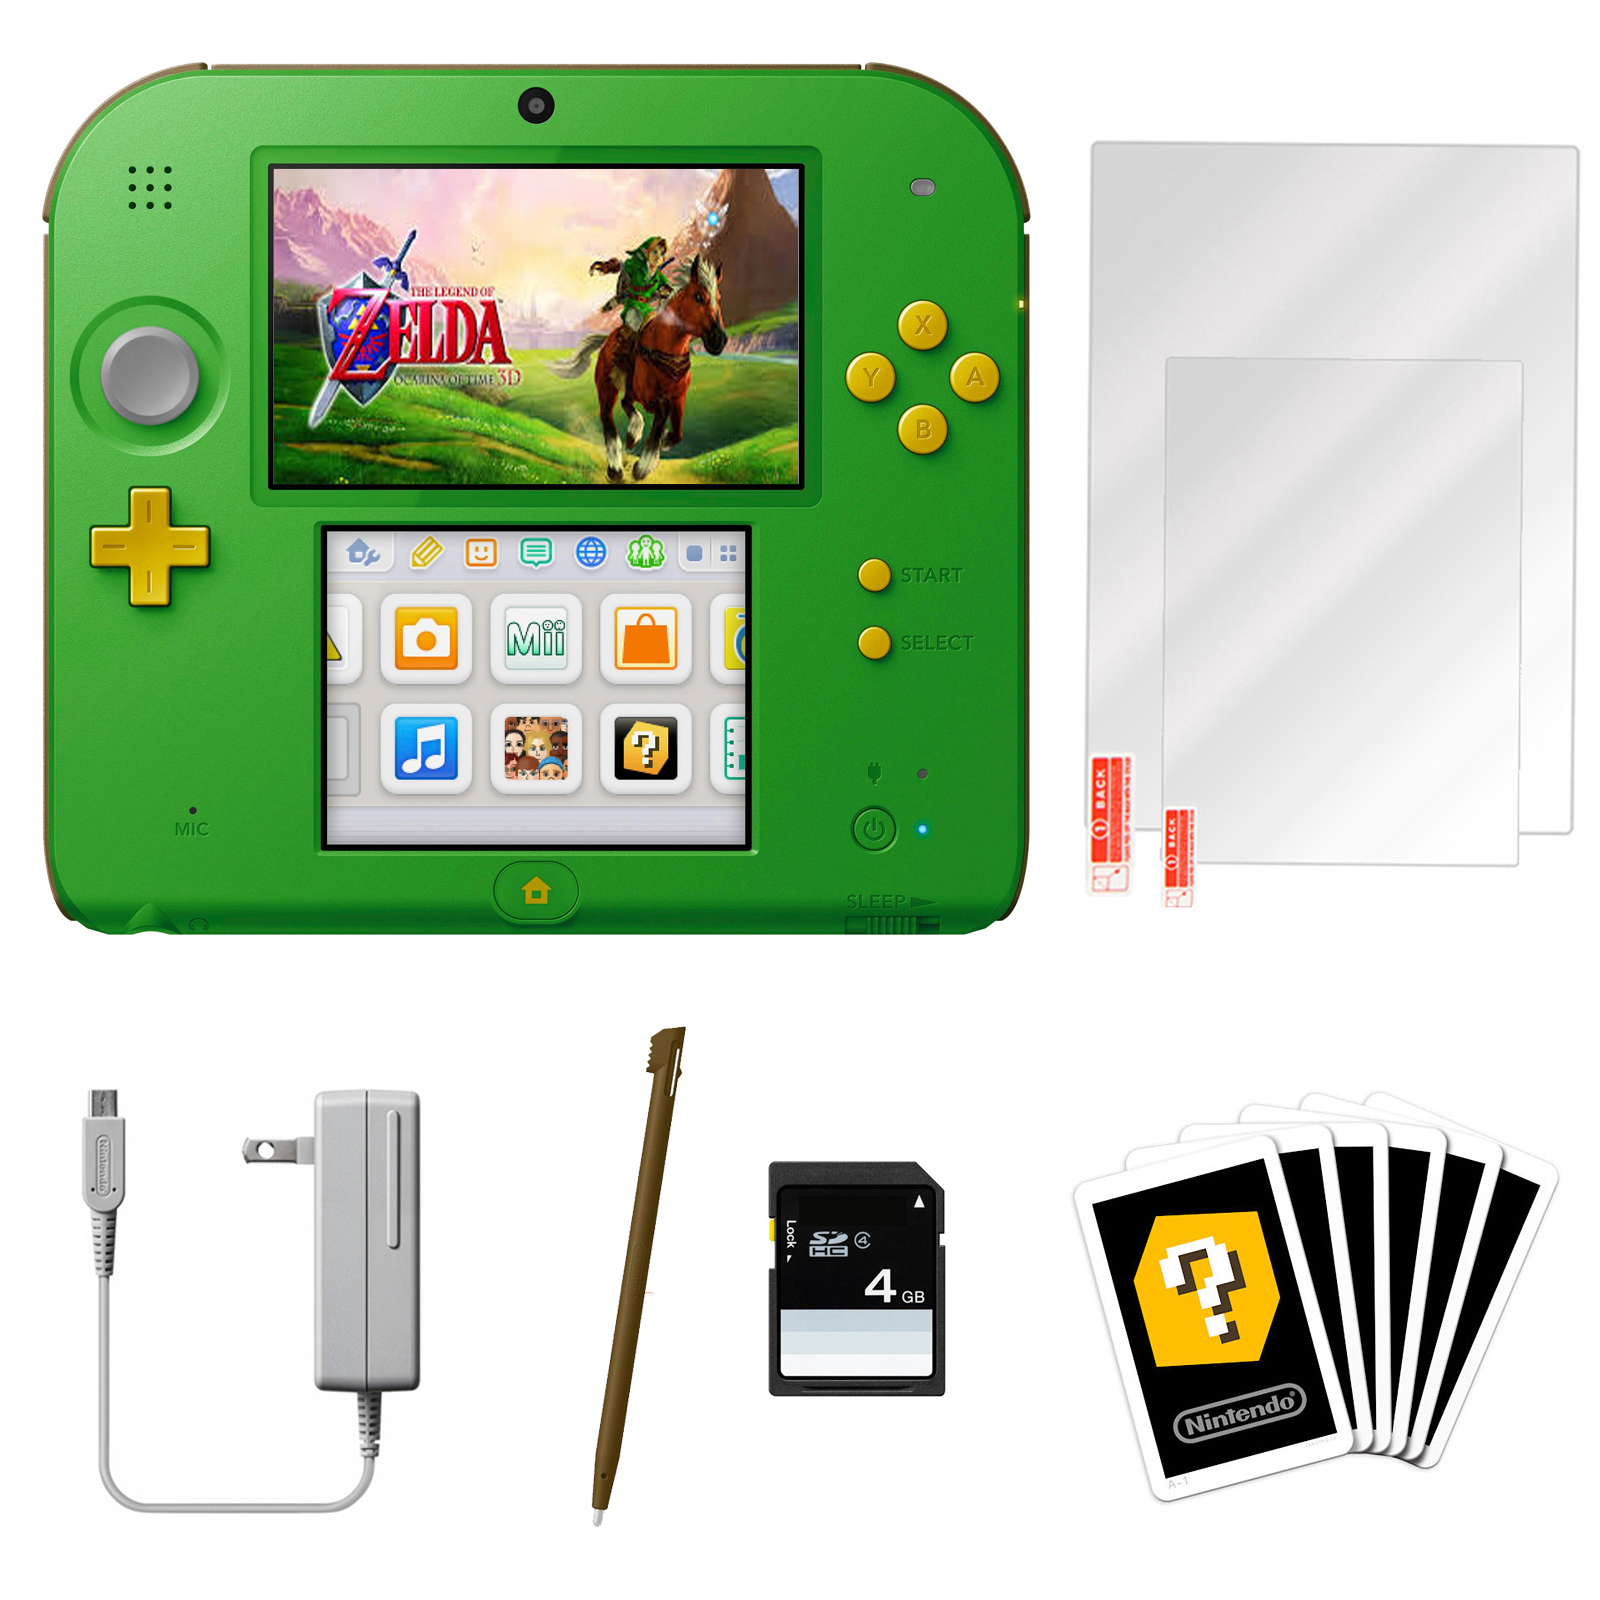 Nintendo 2DS Link Edition with The Legend of Zelda: Ocarina of Time 3D and Screen Protector